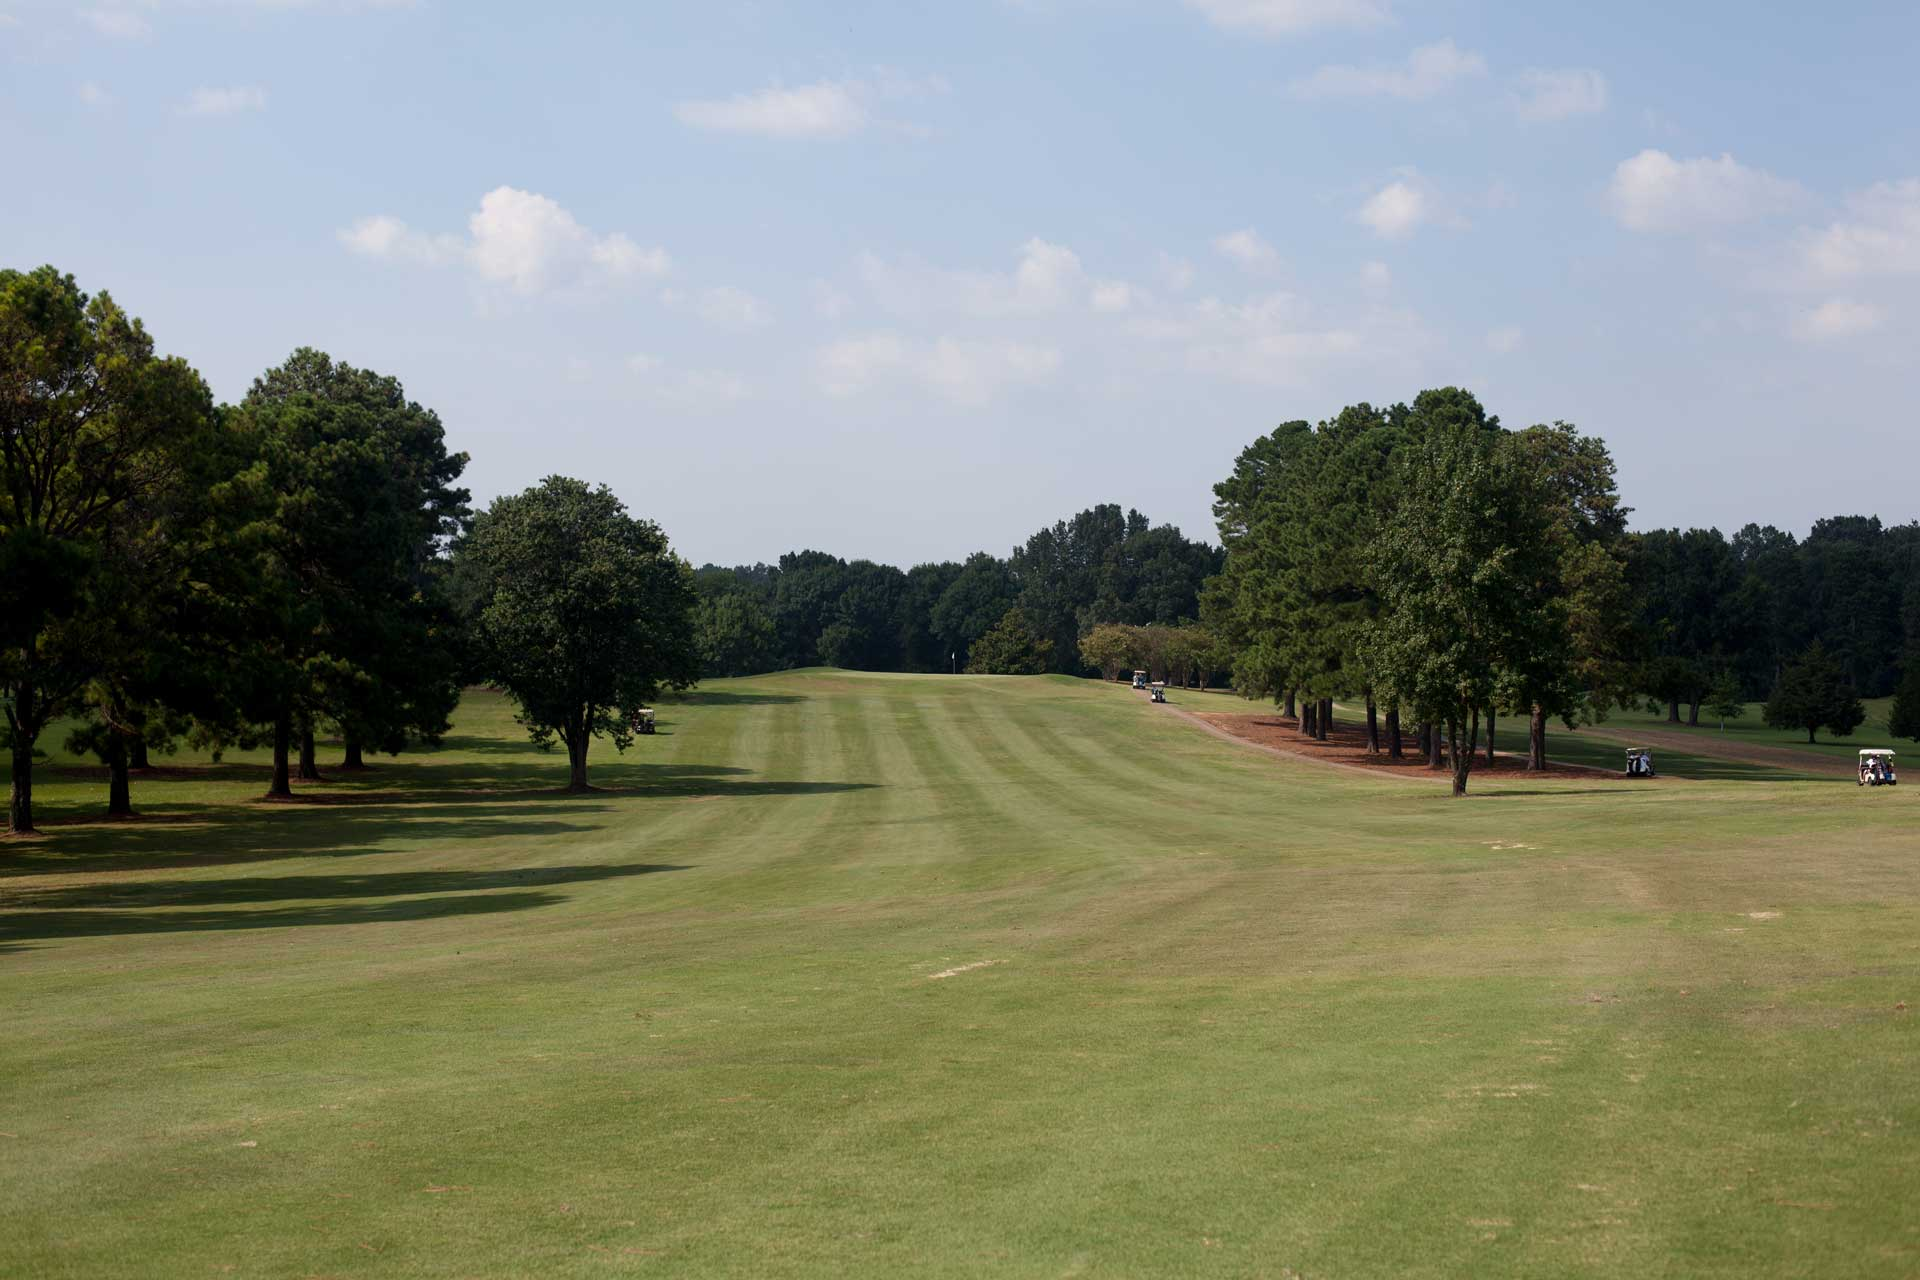 Overview of golf course named Starkville Country Club